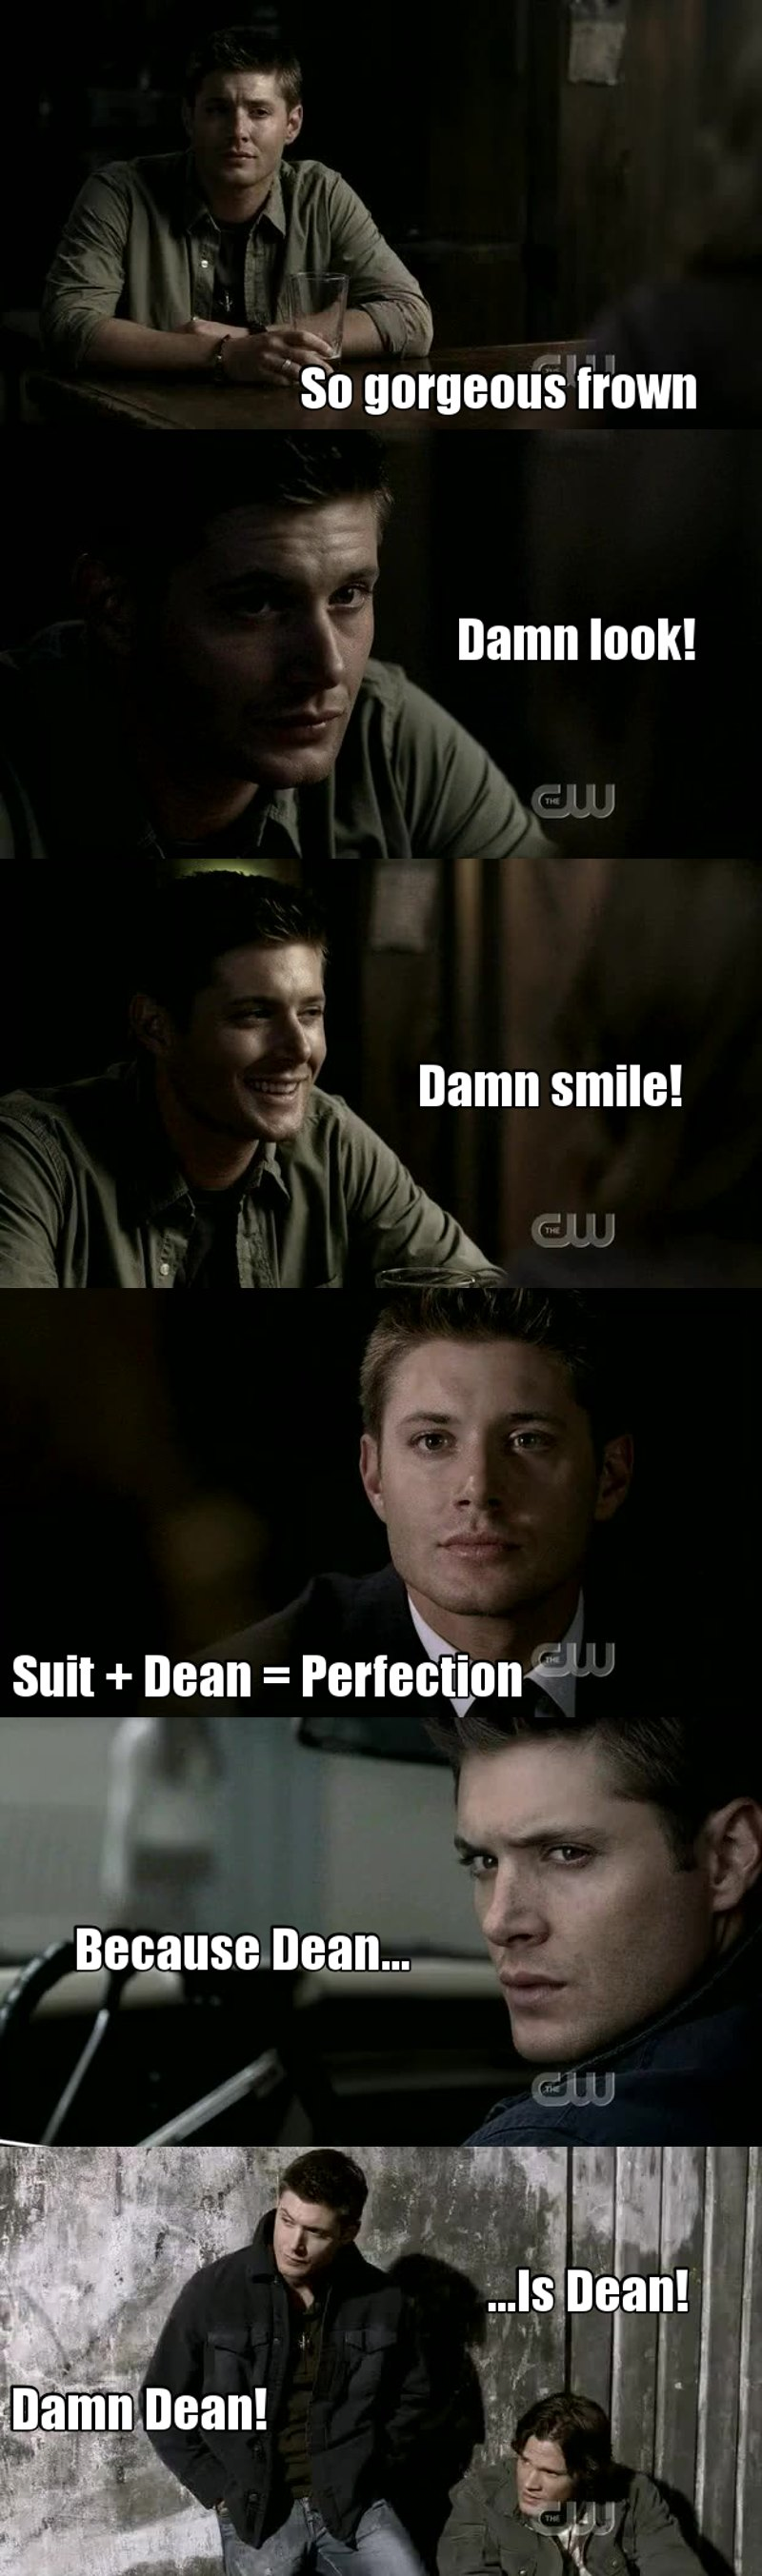 And my Dean's moments... 😊